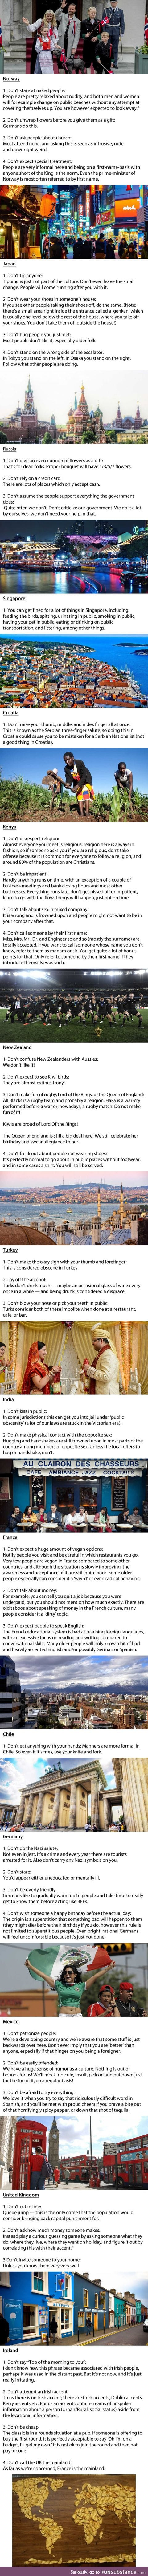 What not to do in some countries